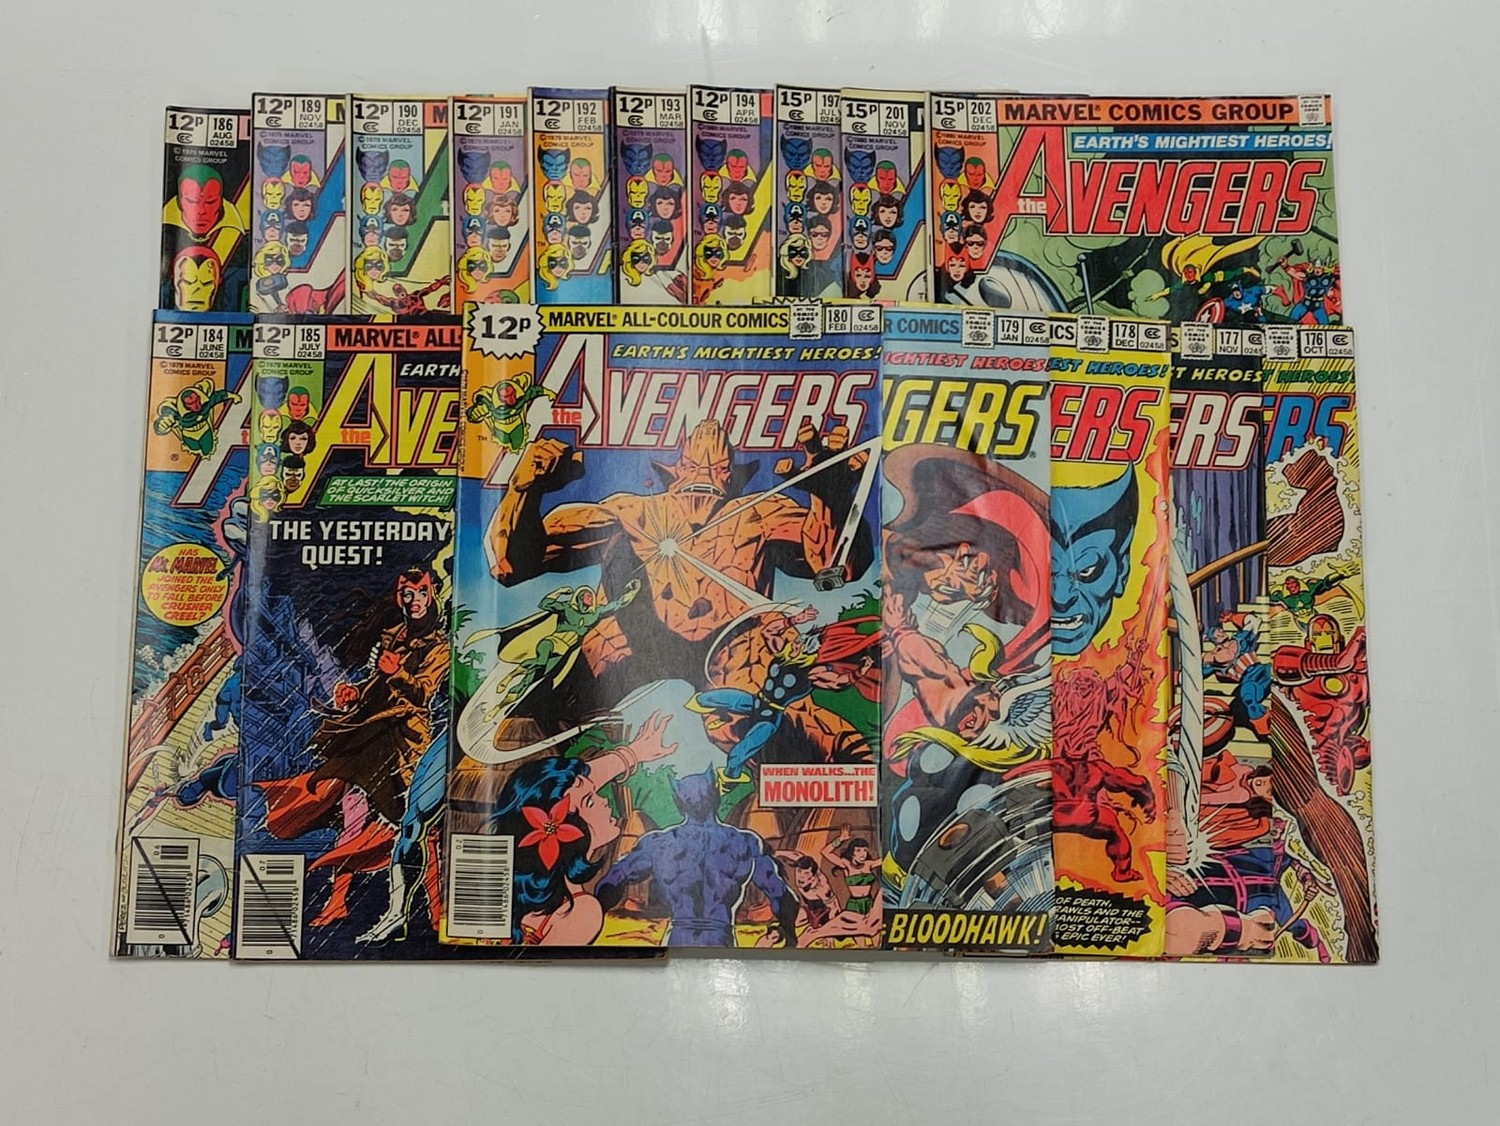 17 editions of Vintage Marvel 'The Avengers' comics in very good condition.